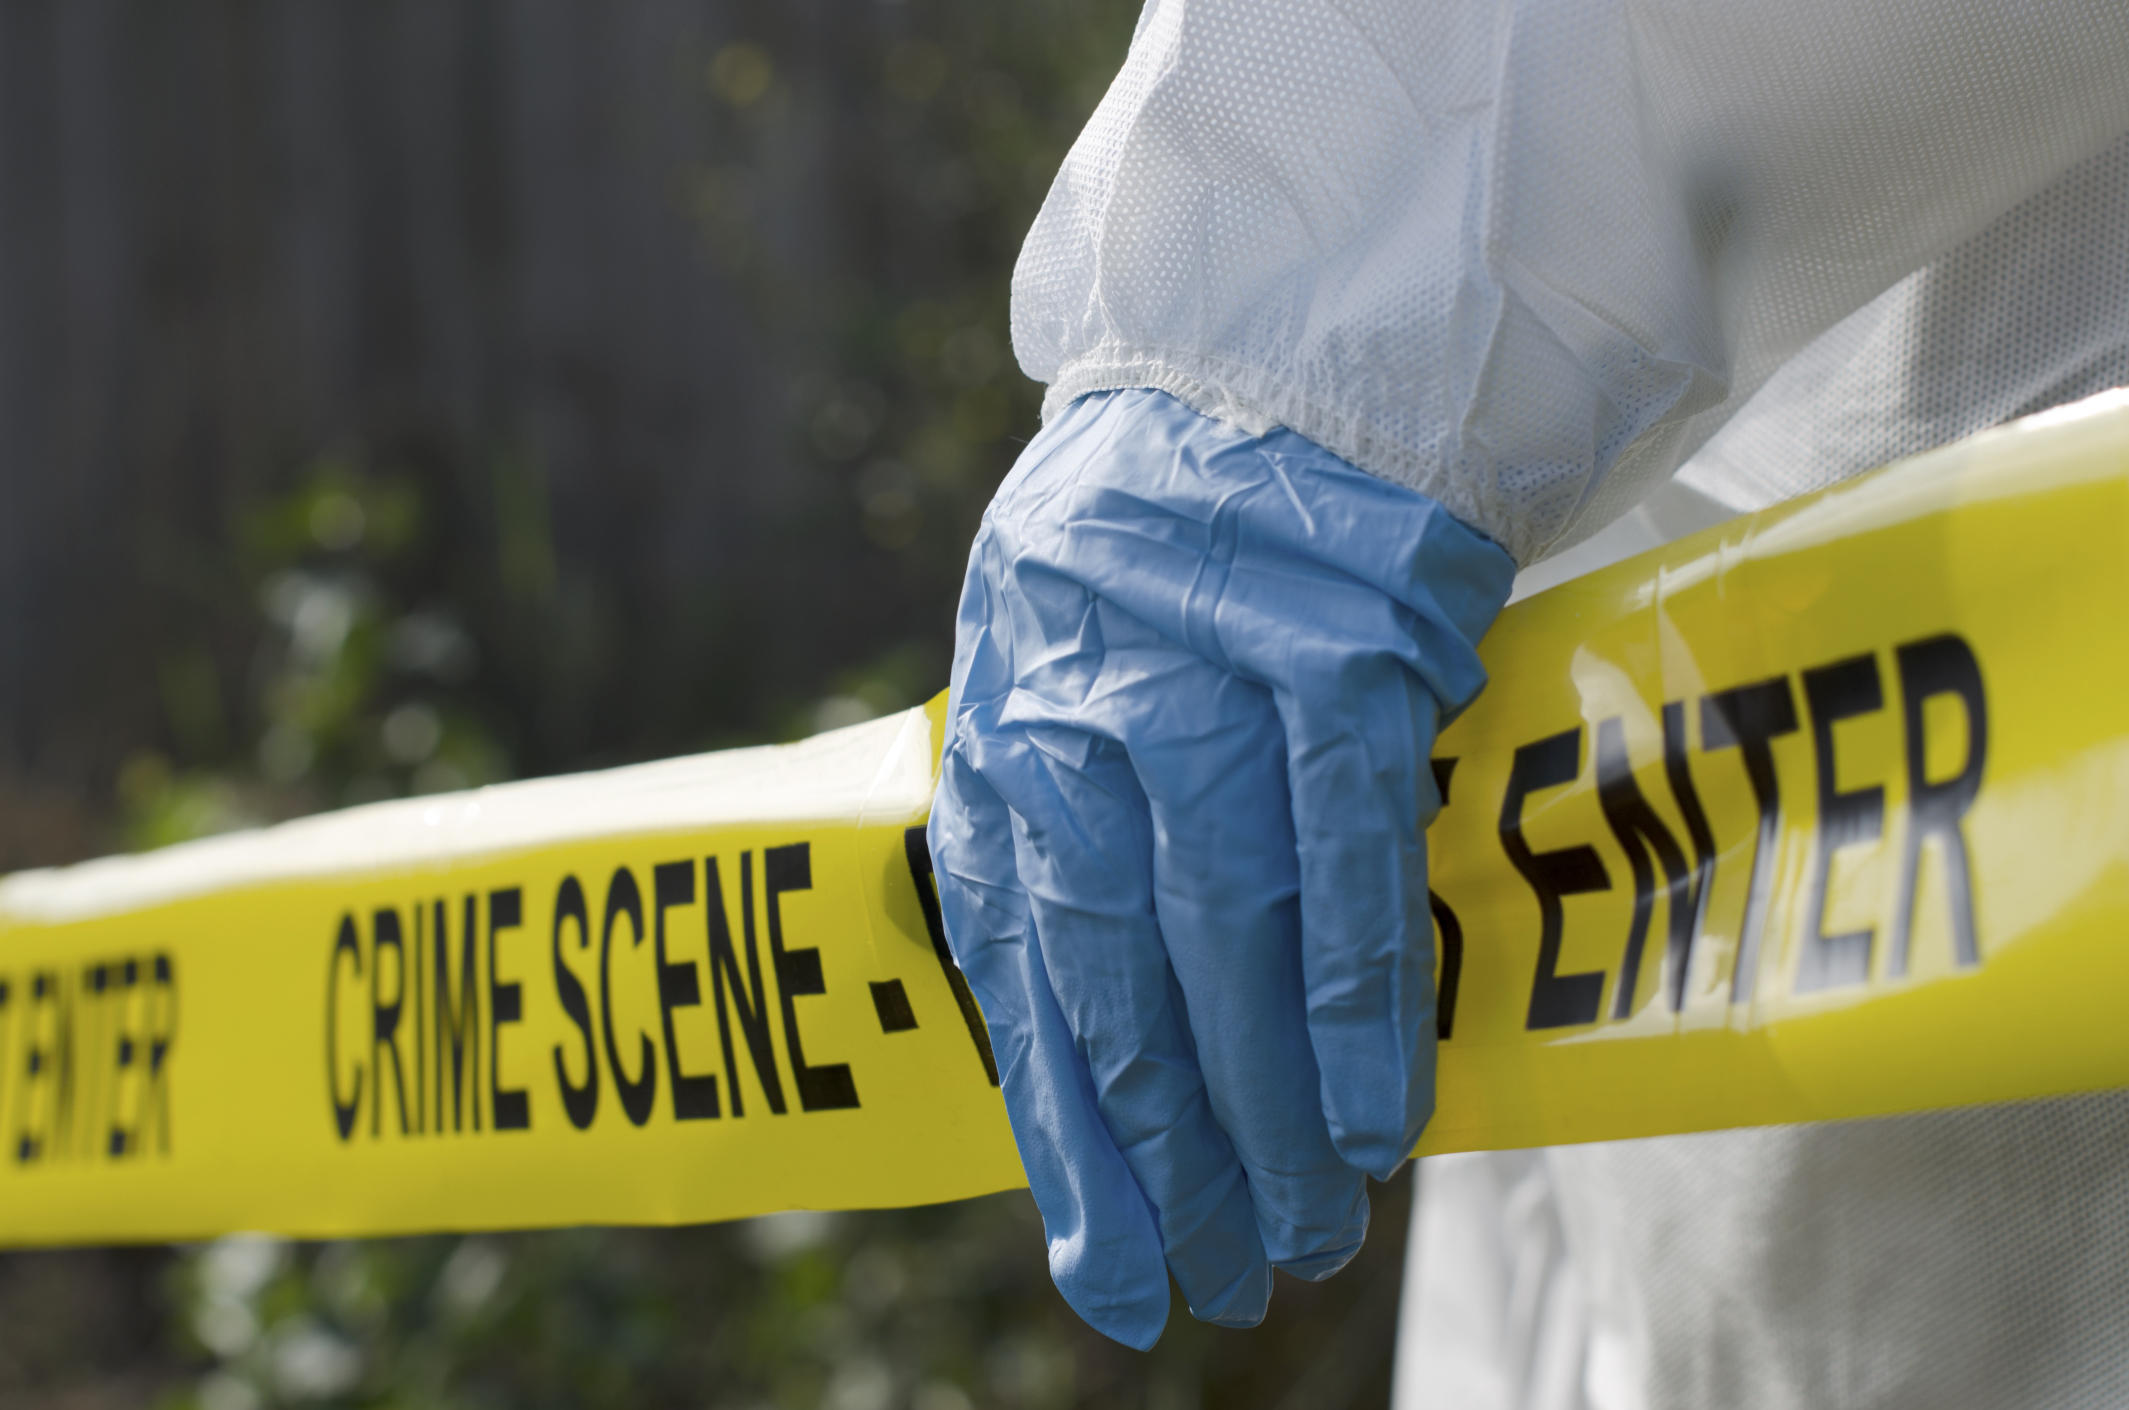 Crime Scene Tape - Thinkstock